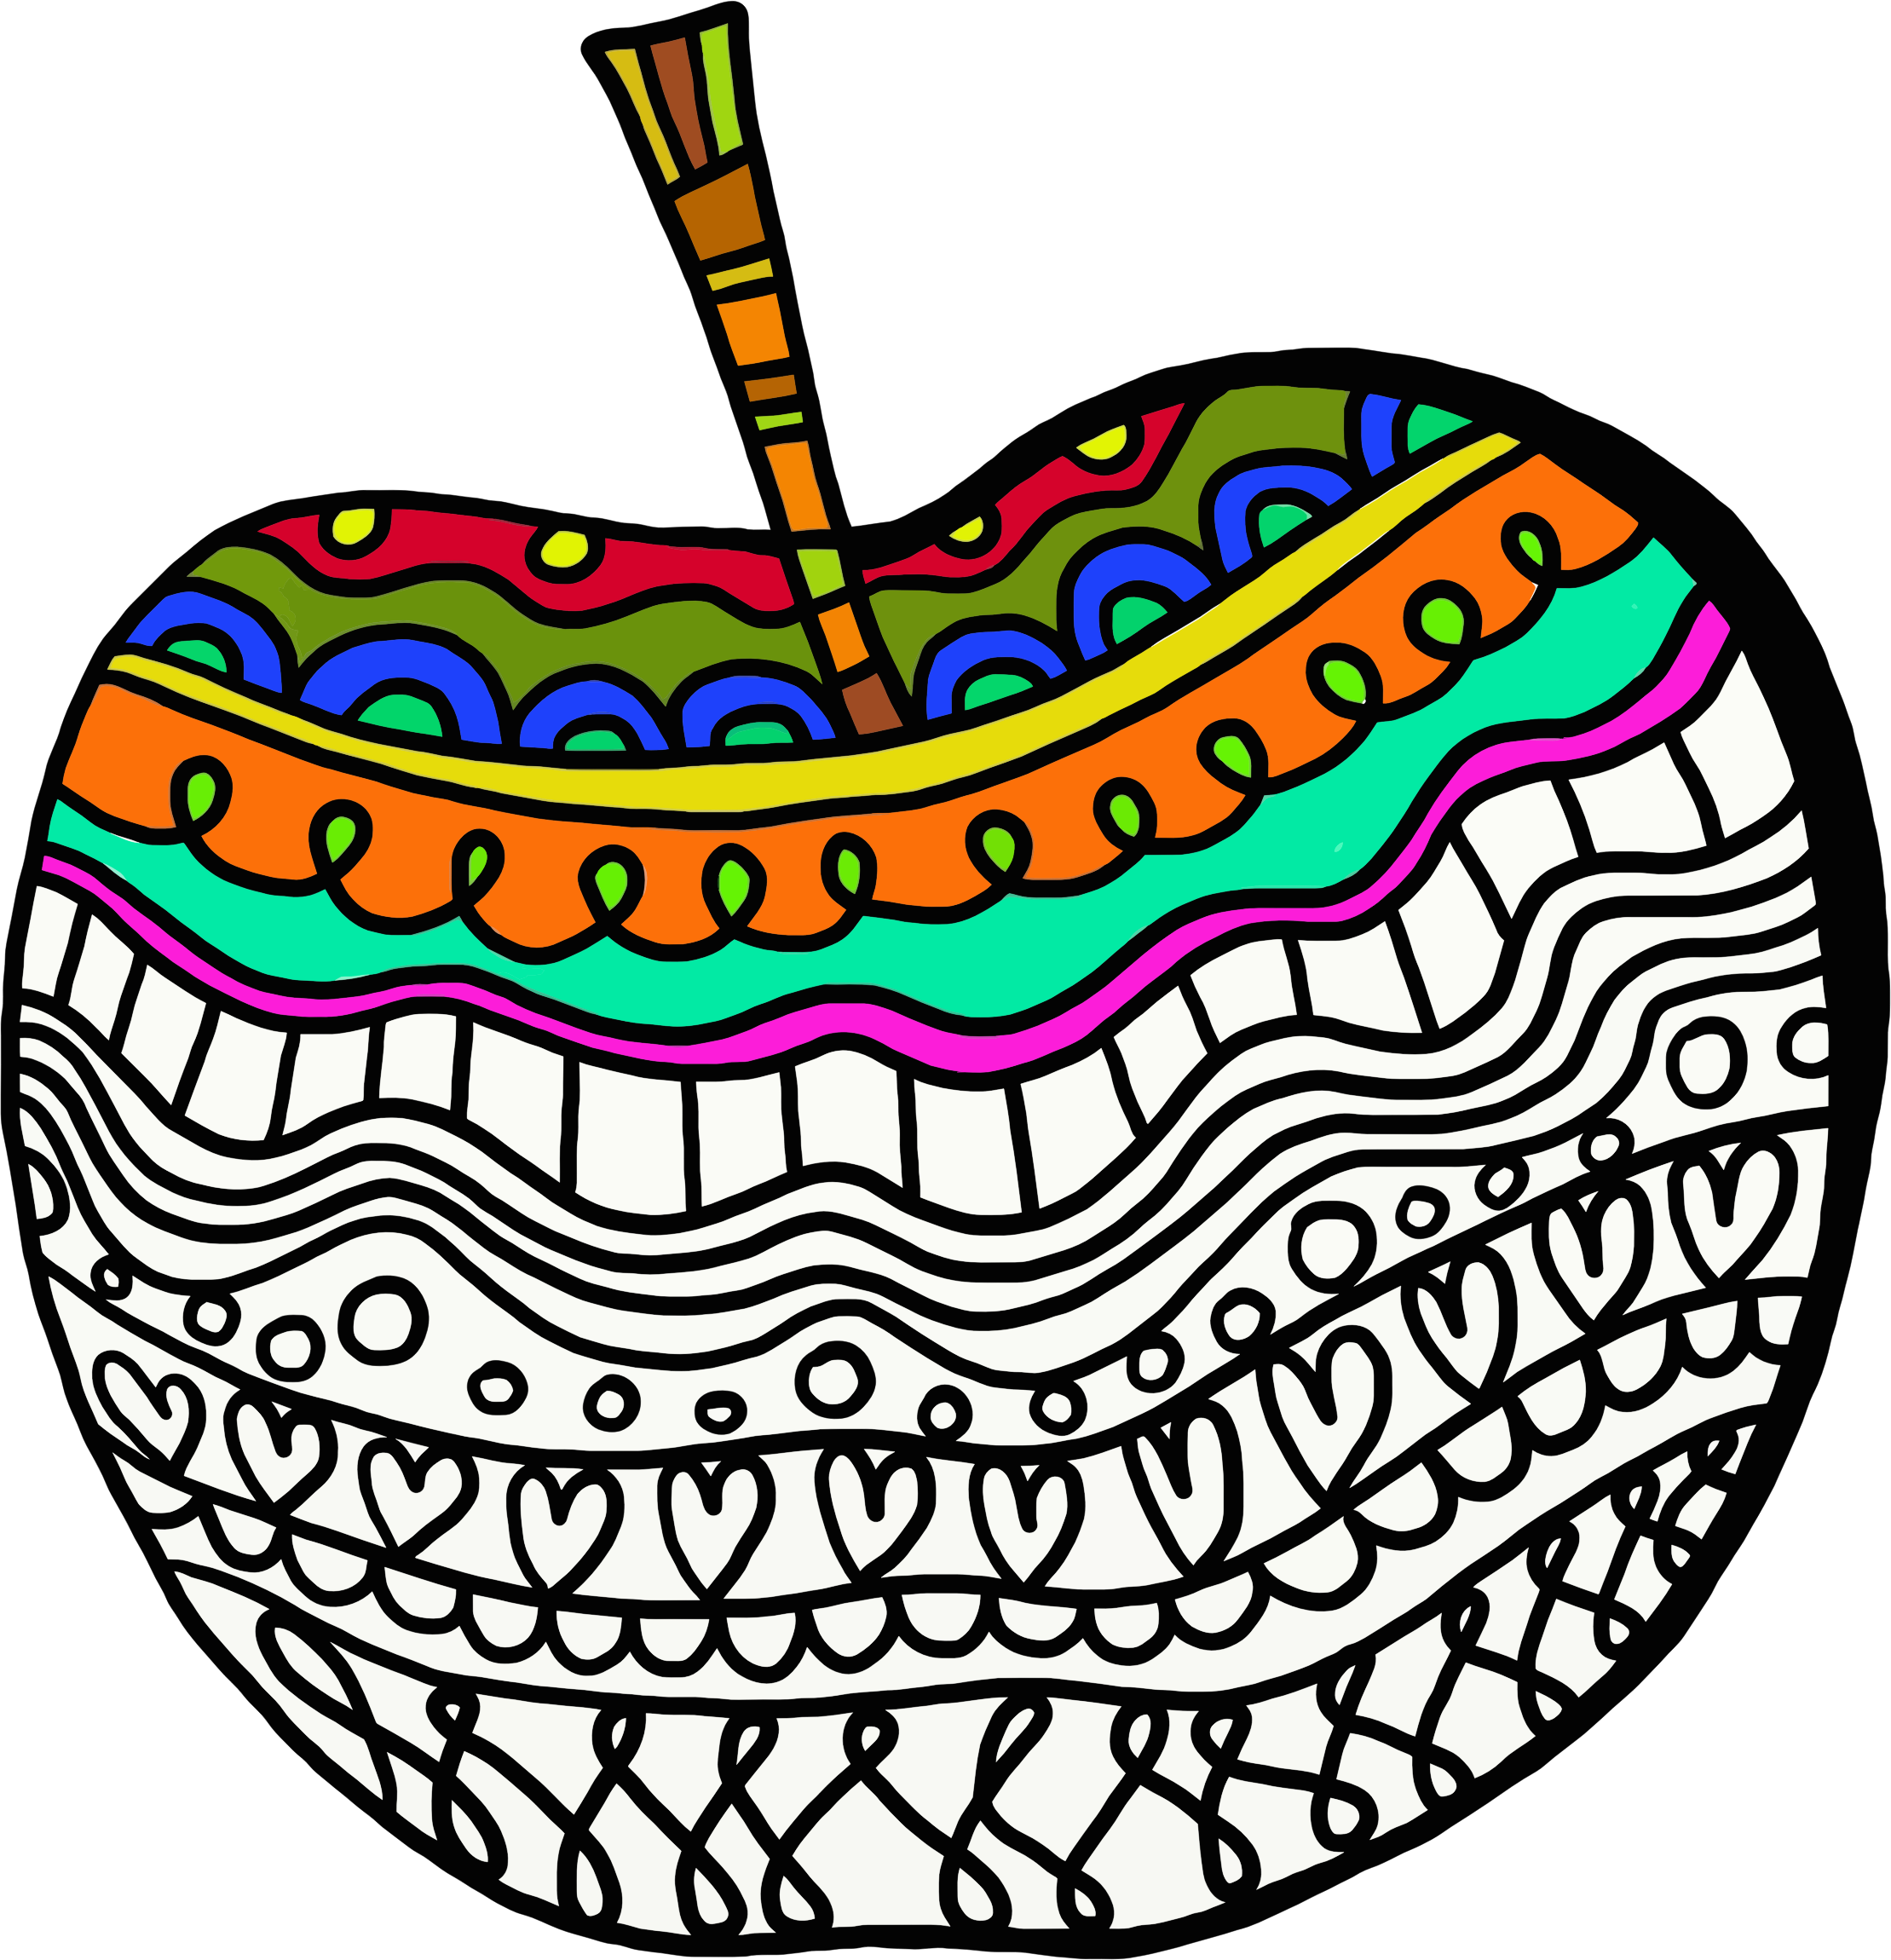 Colorful Decorated Apple by GDJ